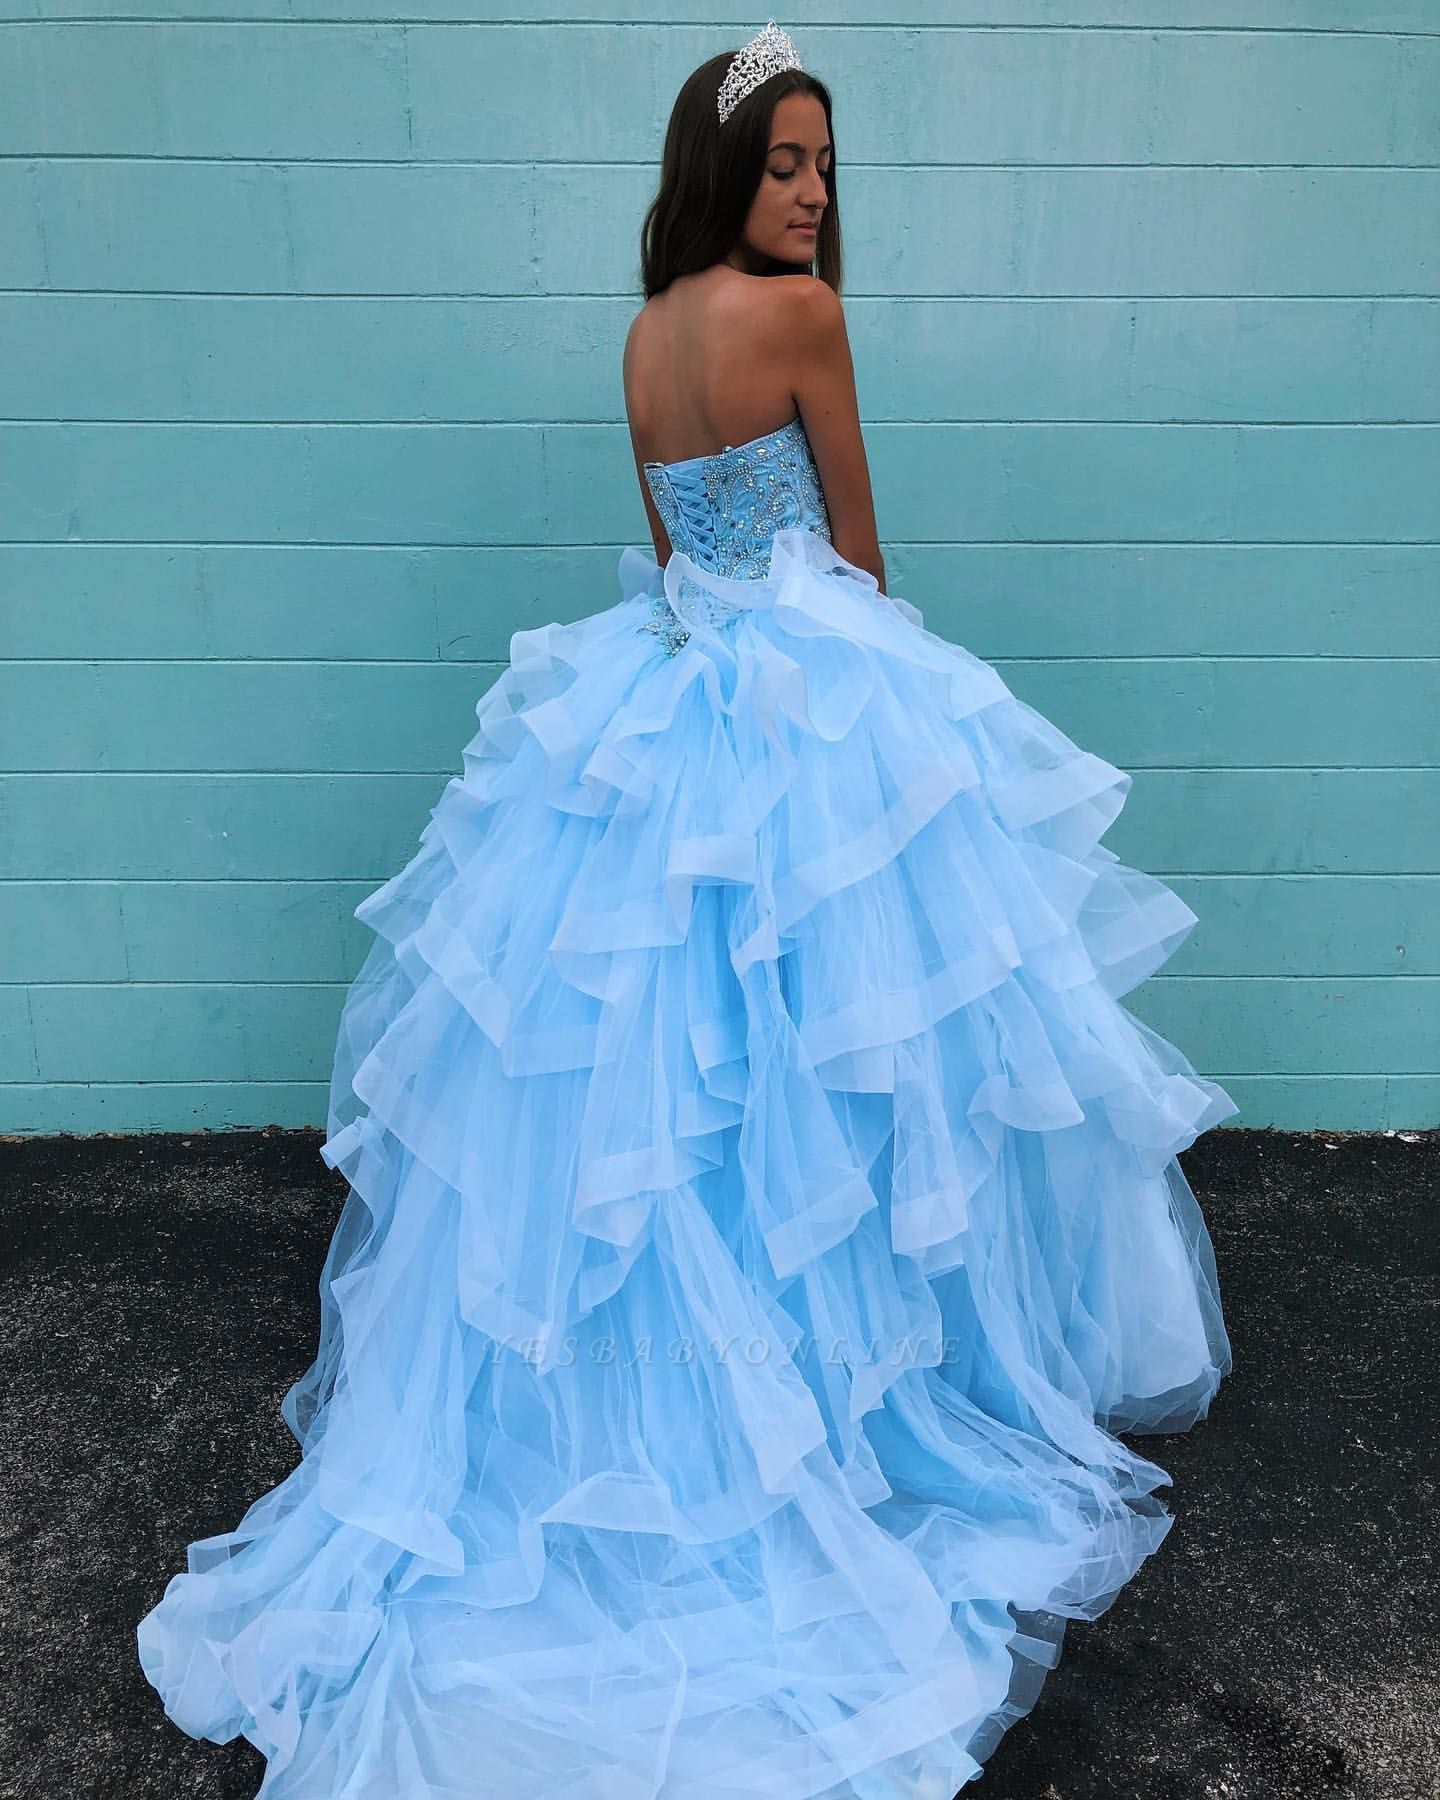 Marvelous Light Blue Beadings Ball Gown Sweet 16 Dresses   Tiered Quinceanera Dresses Long - Sweet 16 dresses, Quinceanera dresses, Ball gowns, Quince dresses, Light blue dresses, Prom dresses ball gown - Yesbabyonline com has a great collection of SleevelessSweetheartQuinceanera dresses at an affordable price  Welcome to buy high quality Quinceanera dresses from us